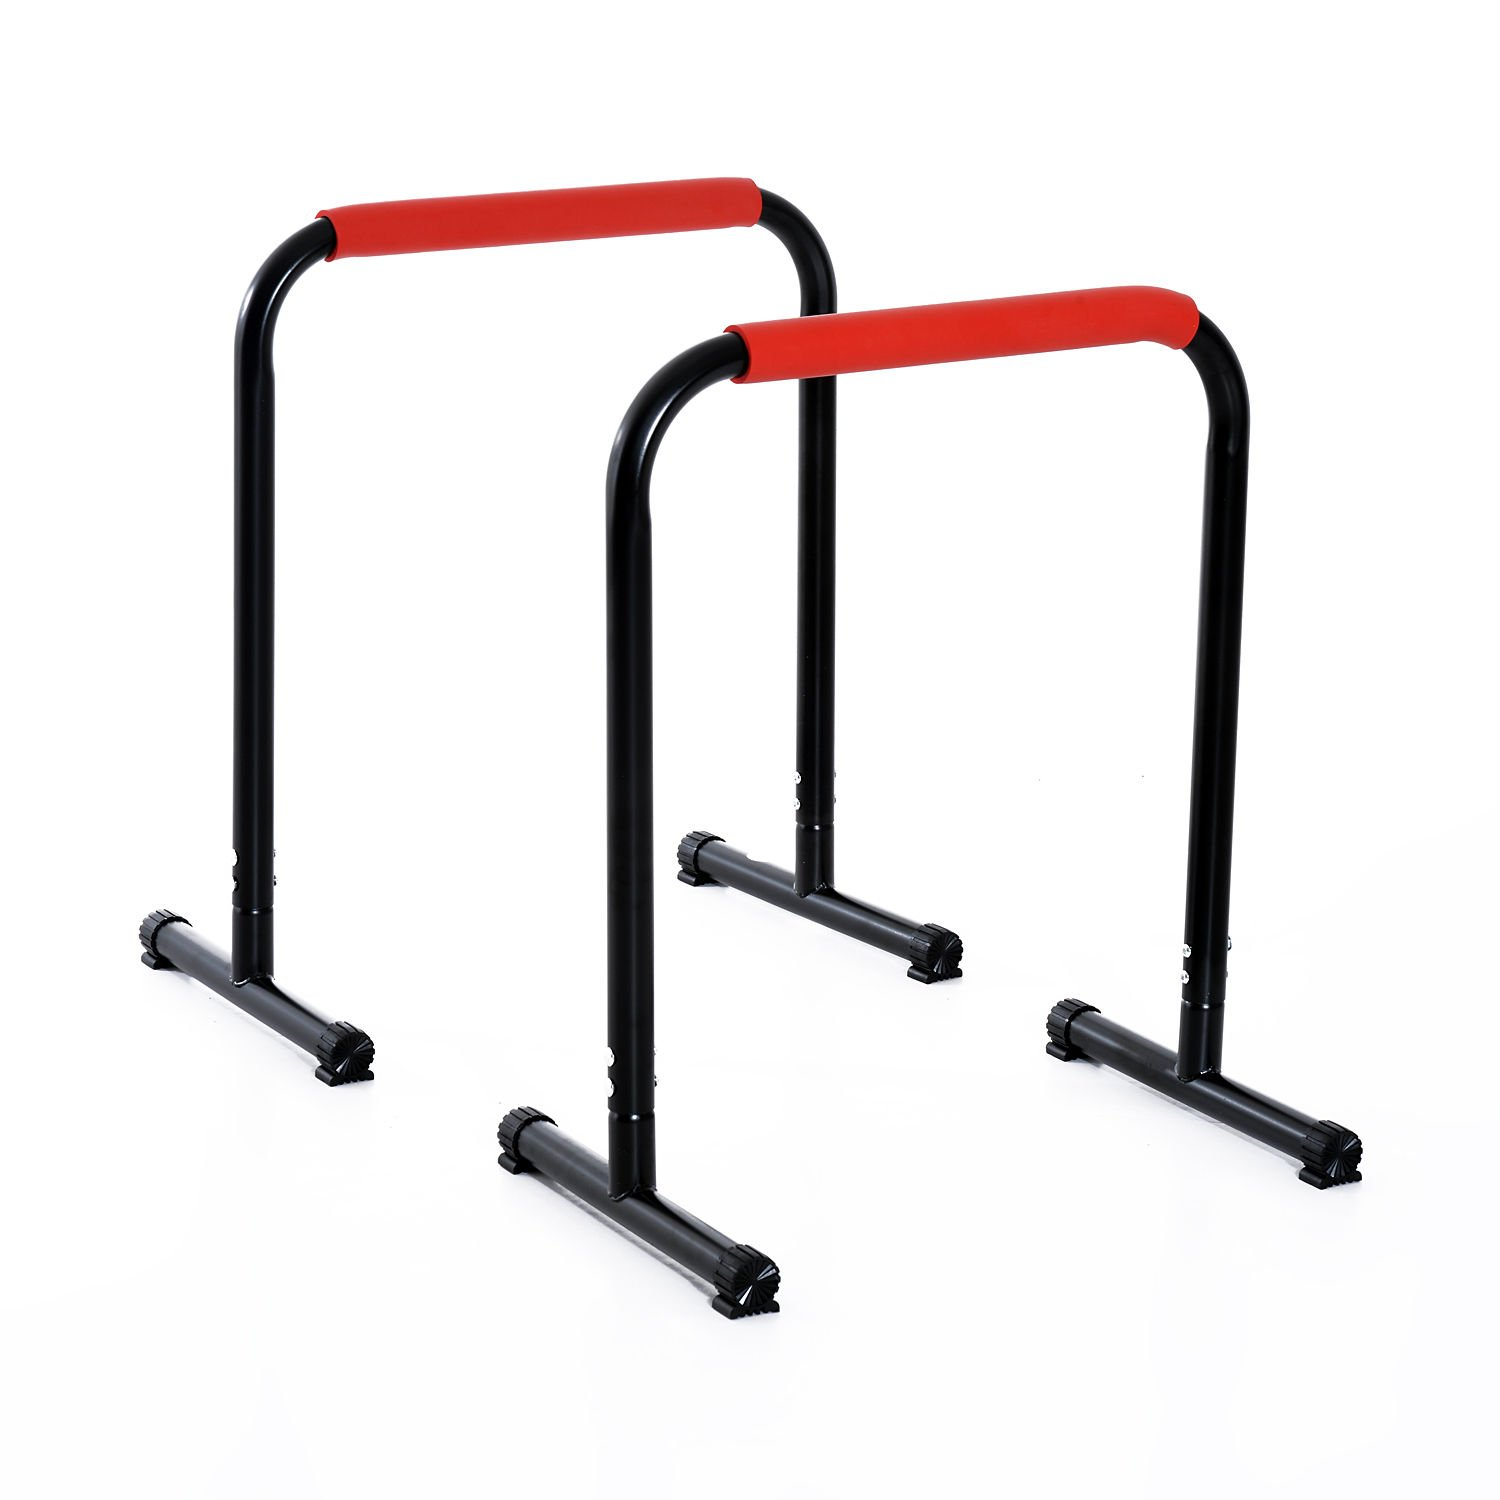 Soozier Parallete Dip Station Bars Home Gym Indoor Outdoor Exercise Equipment